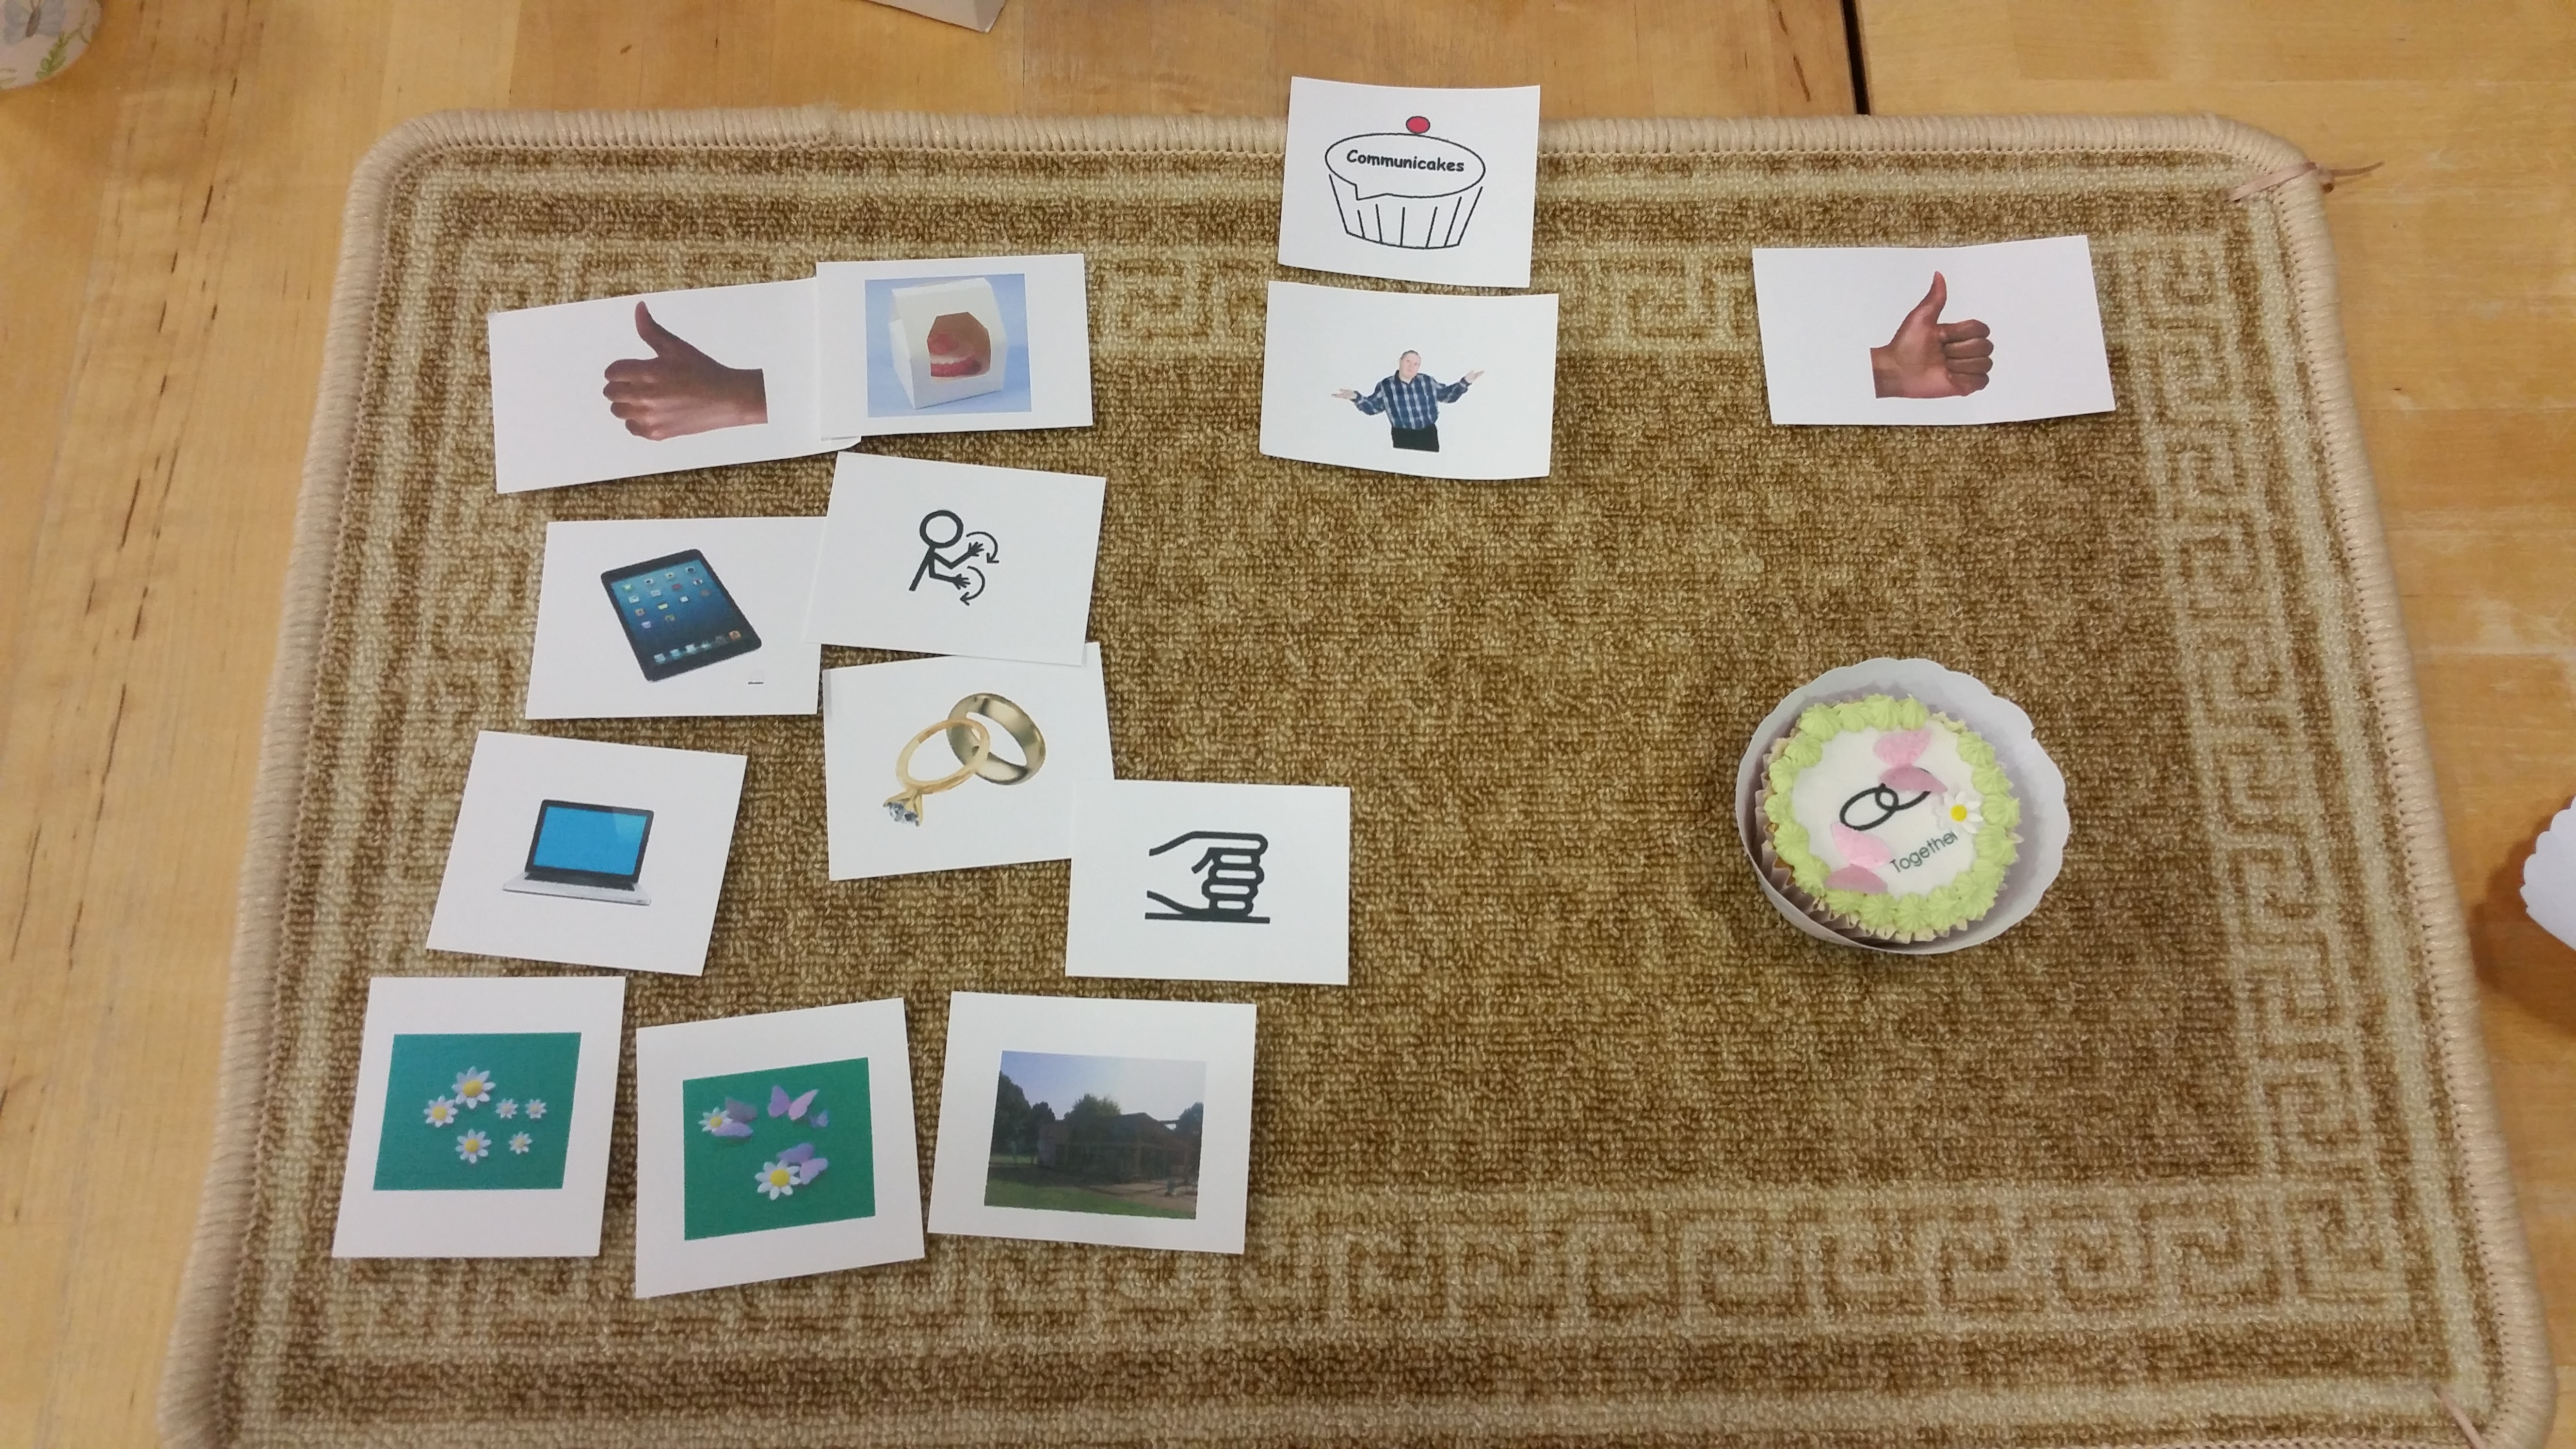 Talking Mat showing positive feedback in symbols and photos